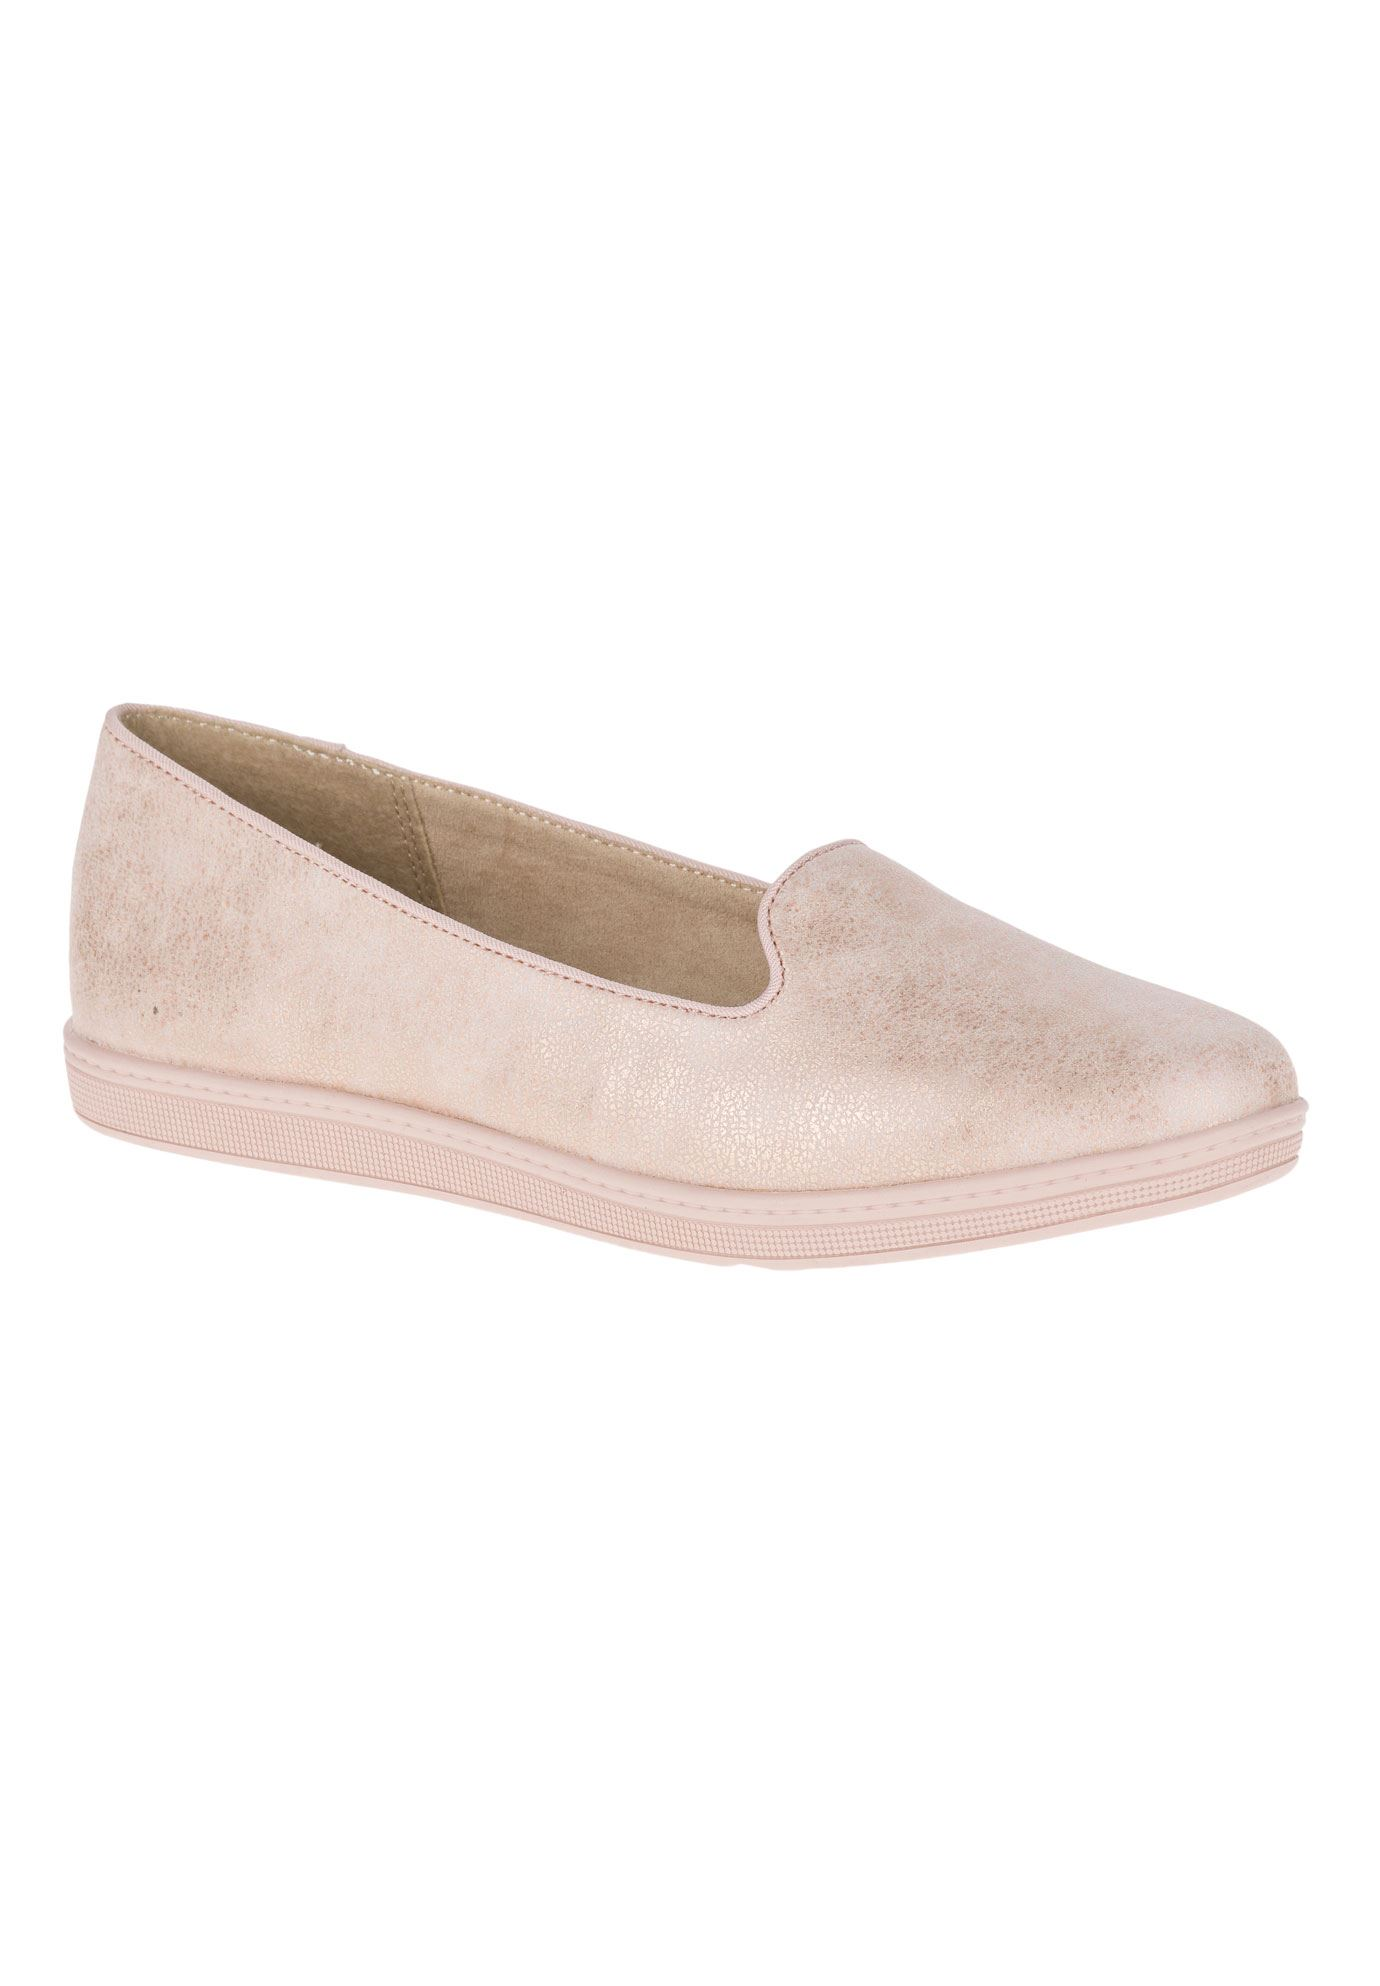 Faline Flats by Soft Style®,